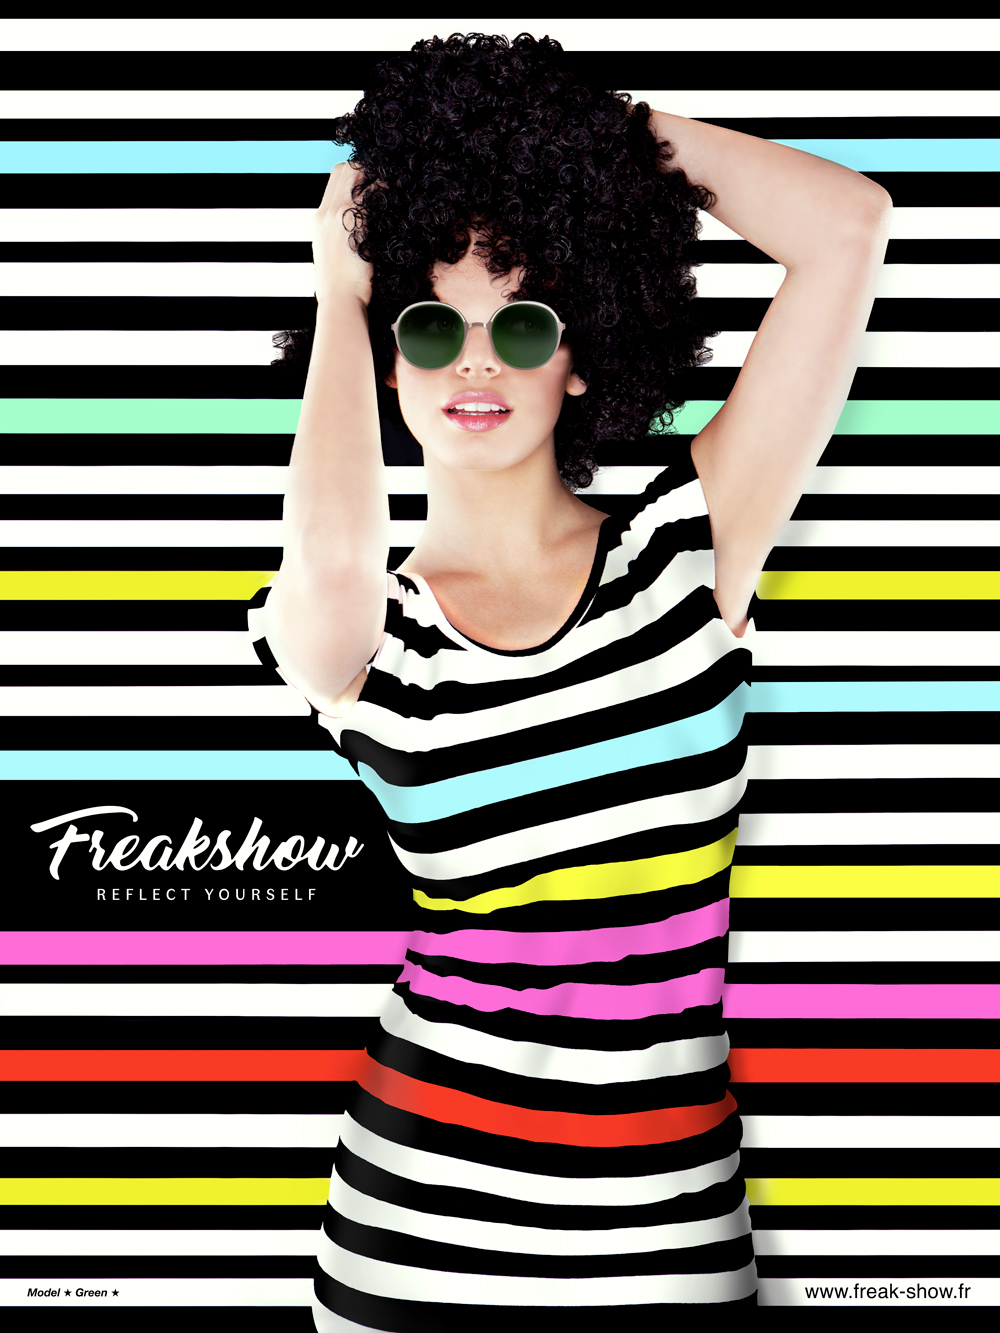 Communication Campaign / Freakshow Sunglasses